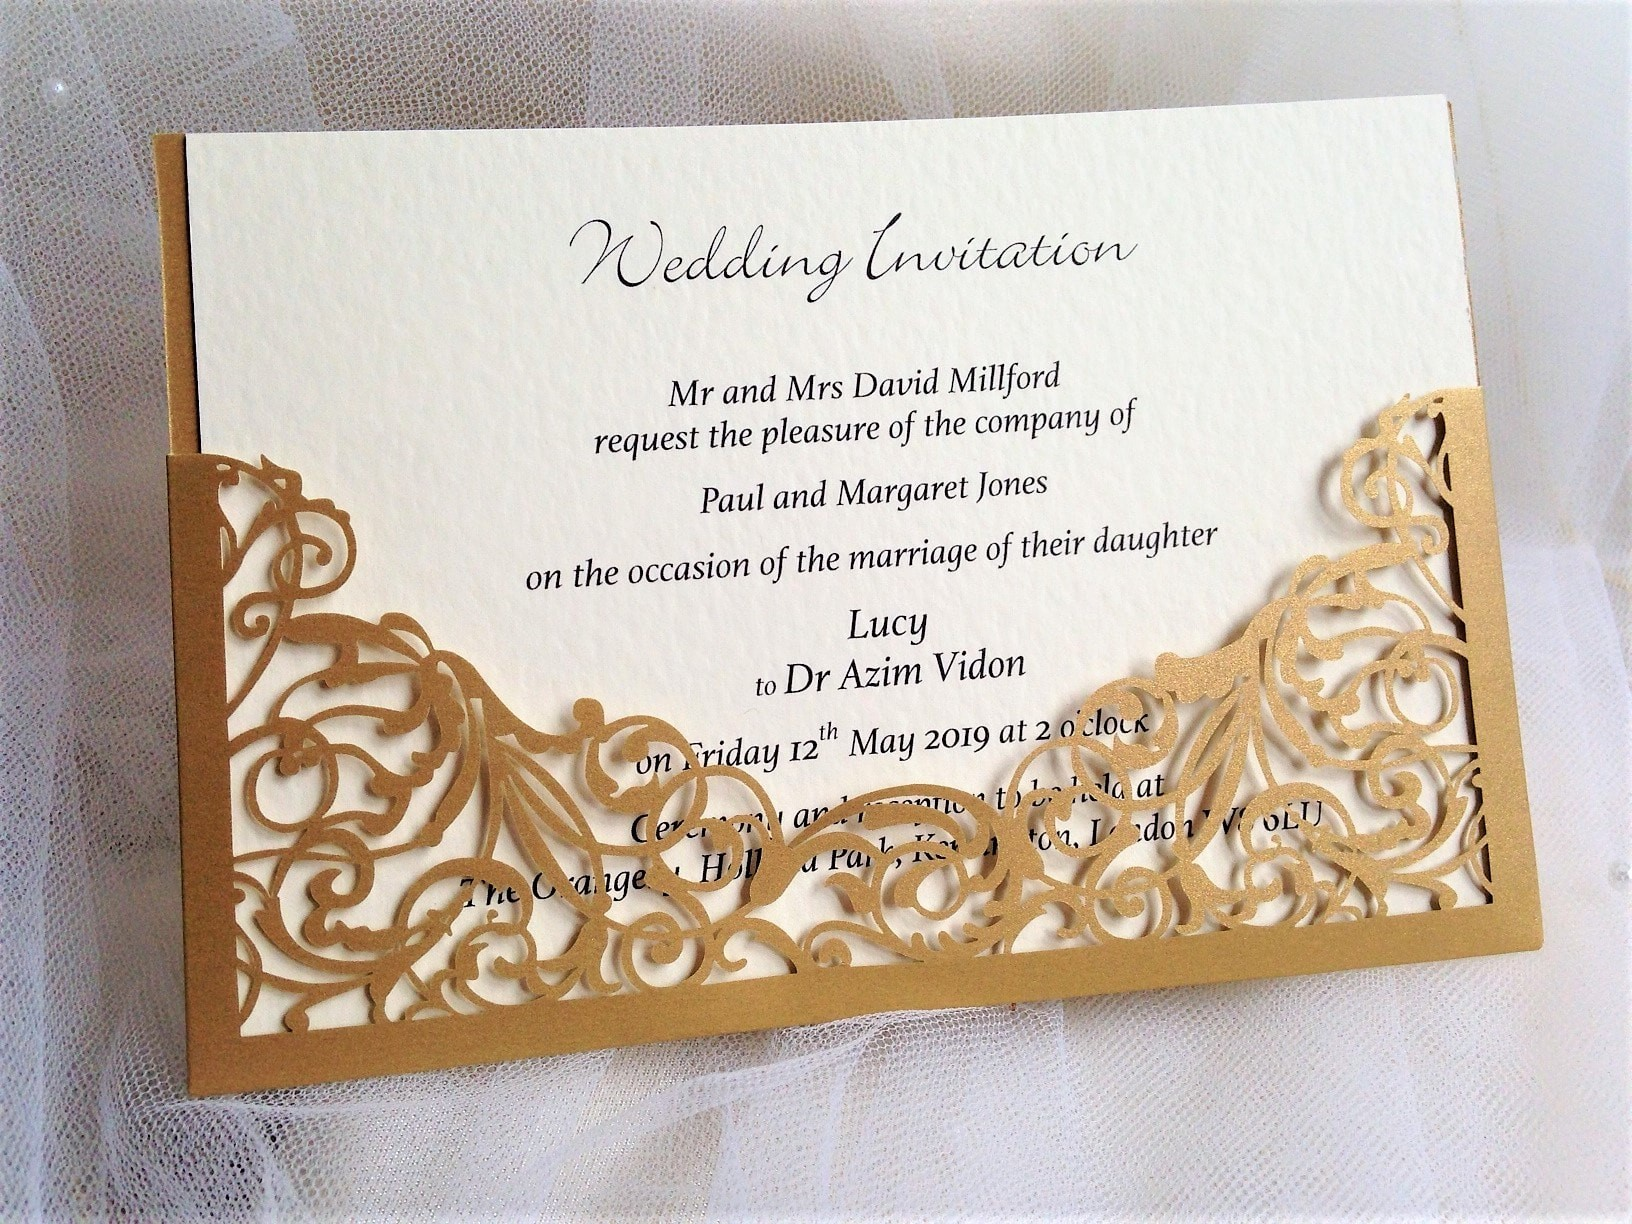 Cheap Wedding Invites Online: Wedding Invitations 60p